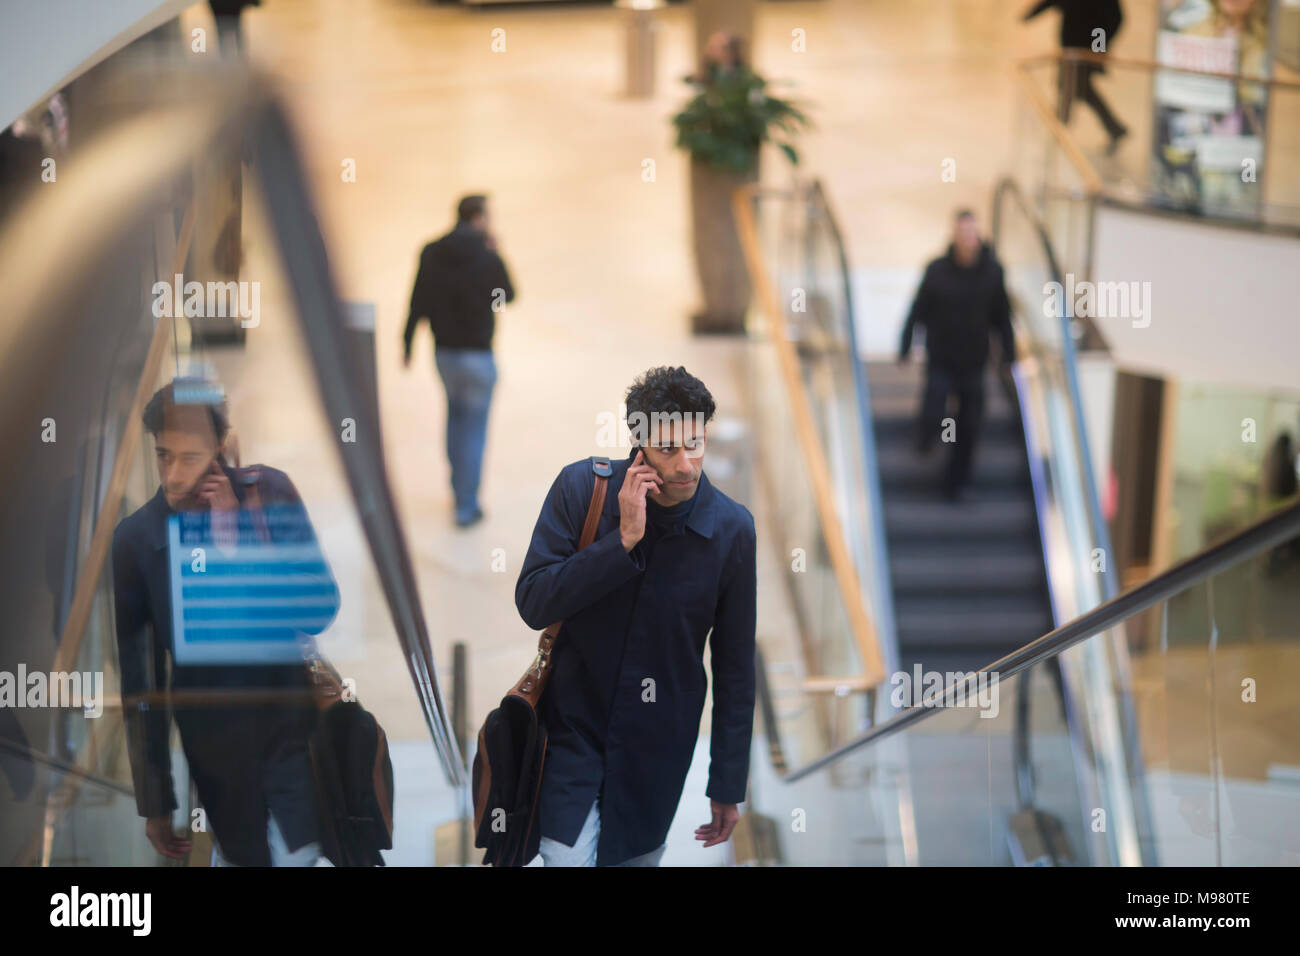 Man on the phone standing on escalator in a shopping mall - Stock Image